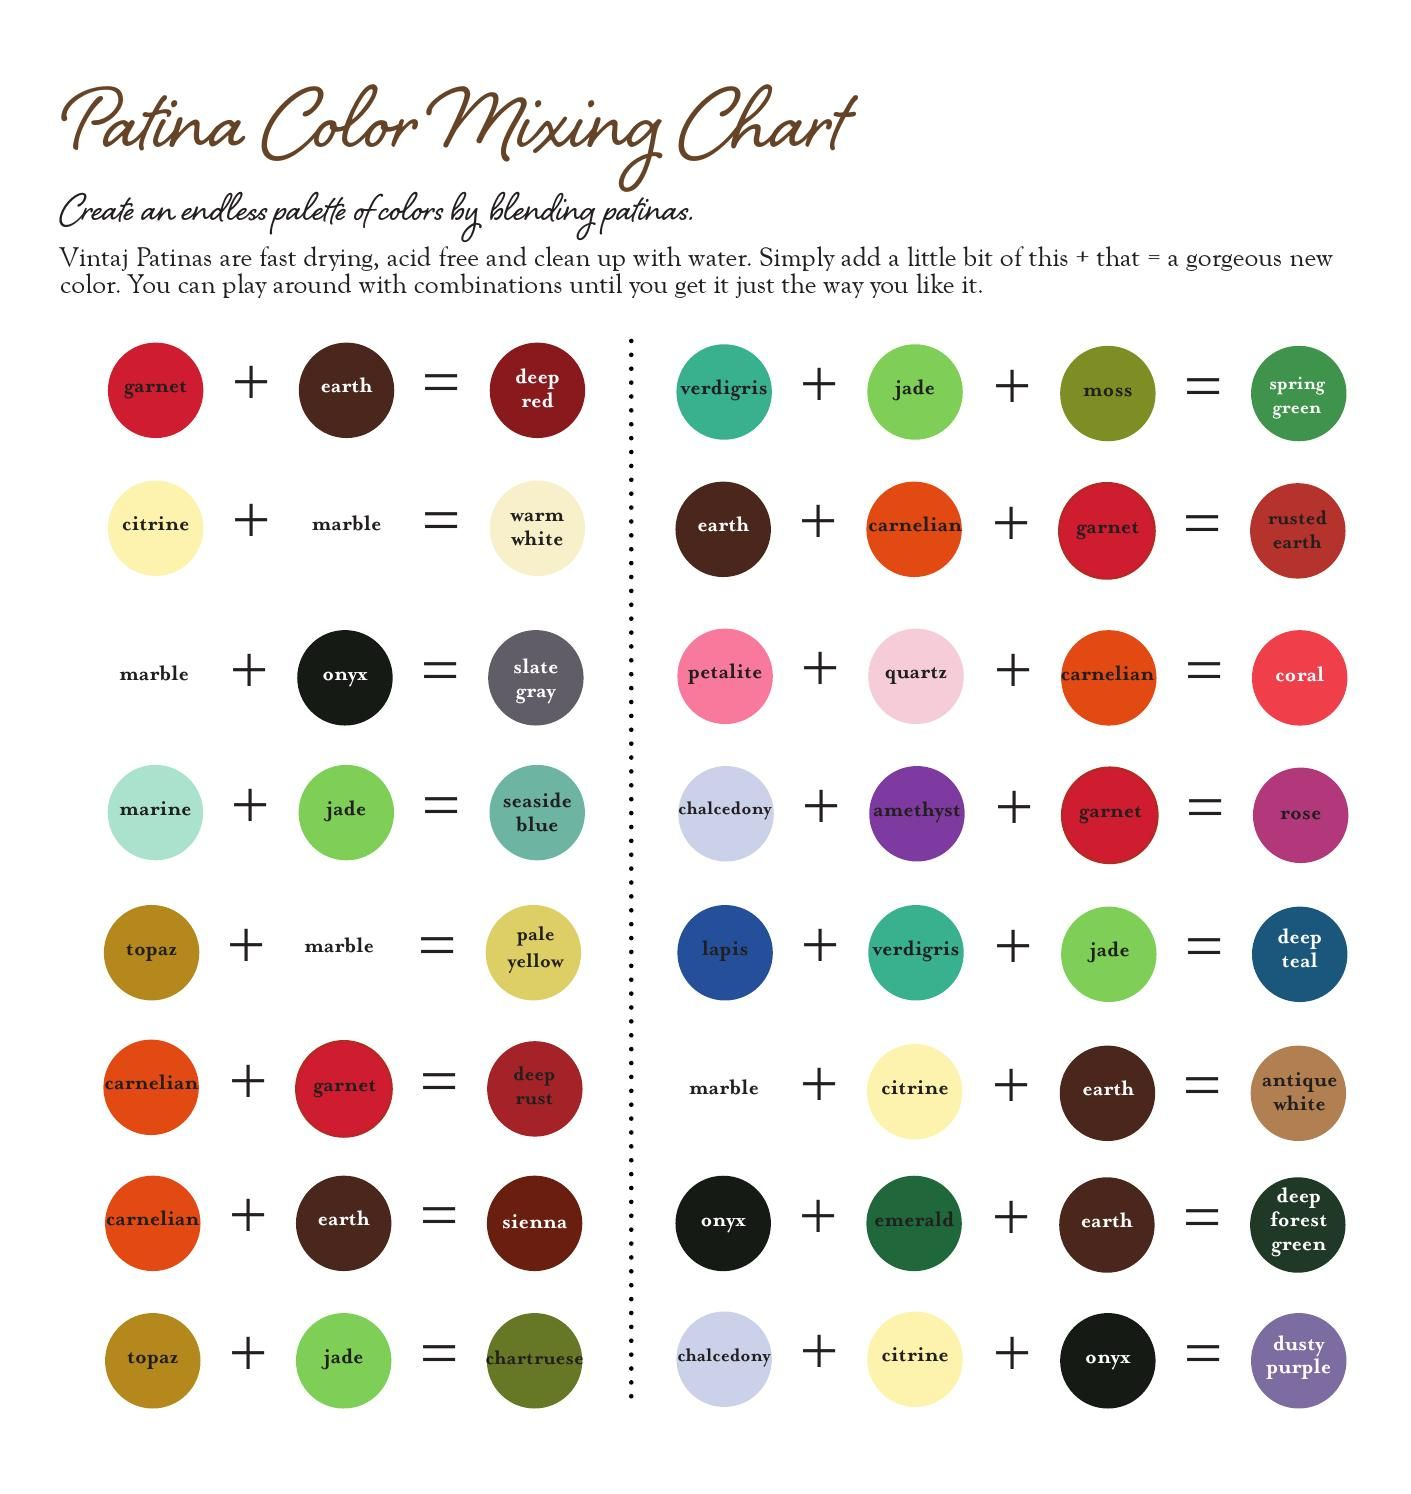 Patina Color Mixing Chart | Color mixing chart, Chart and Create